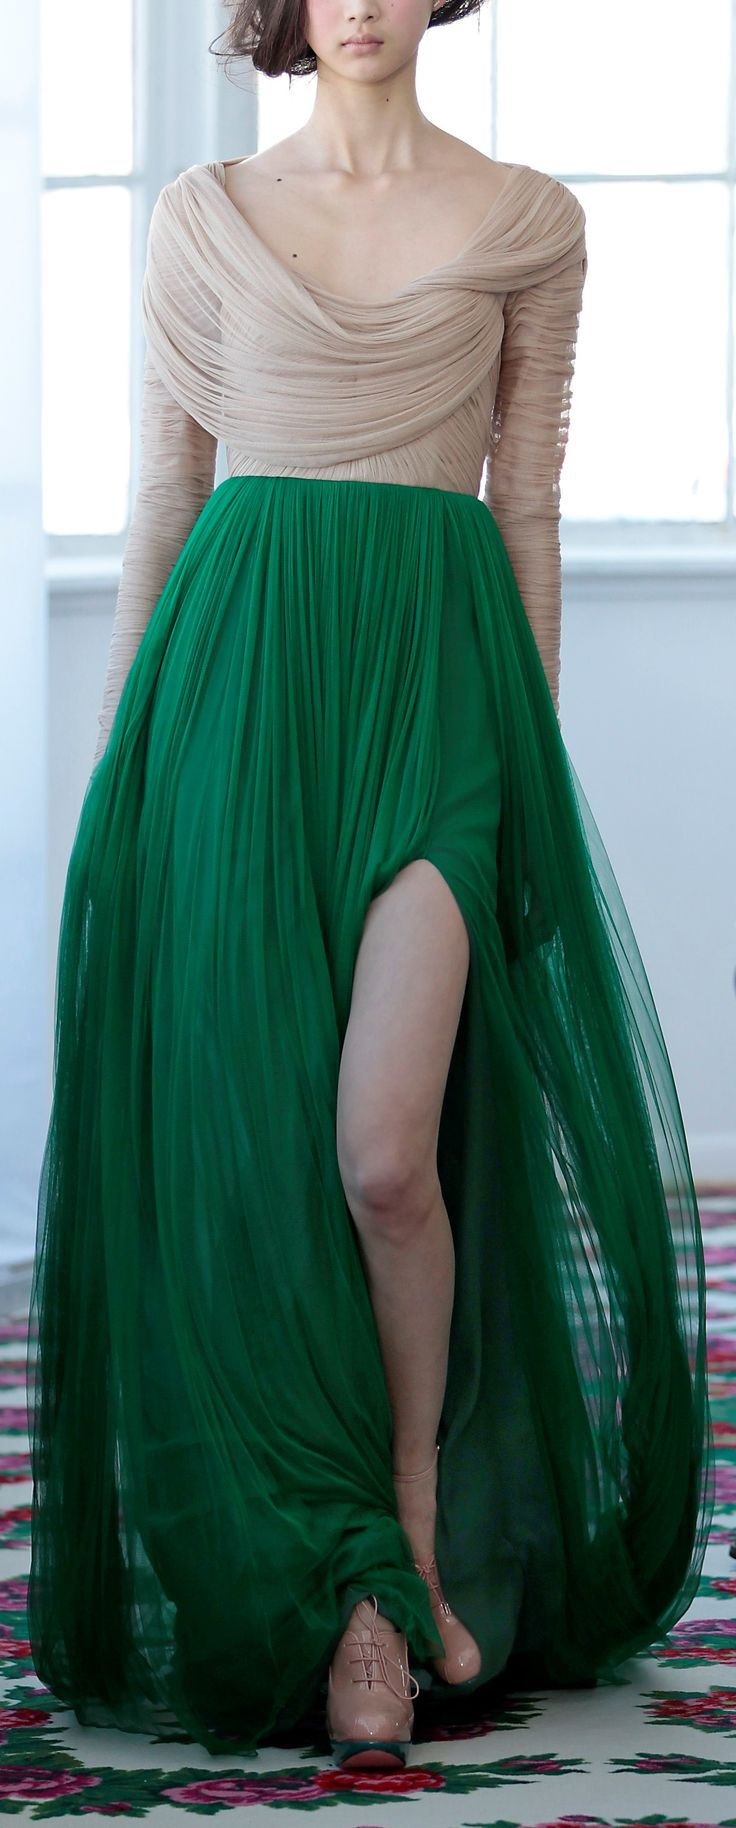 Delpozo NYFW 2013 Wow, my mouth dropped